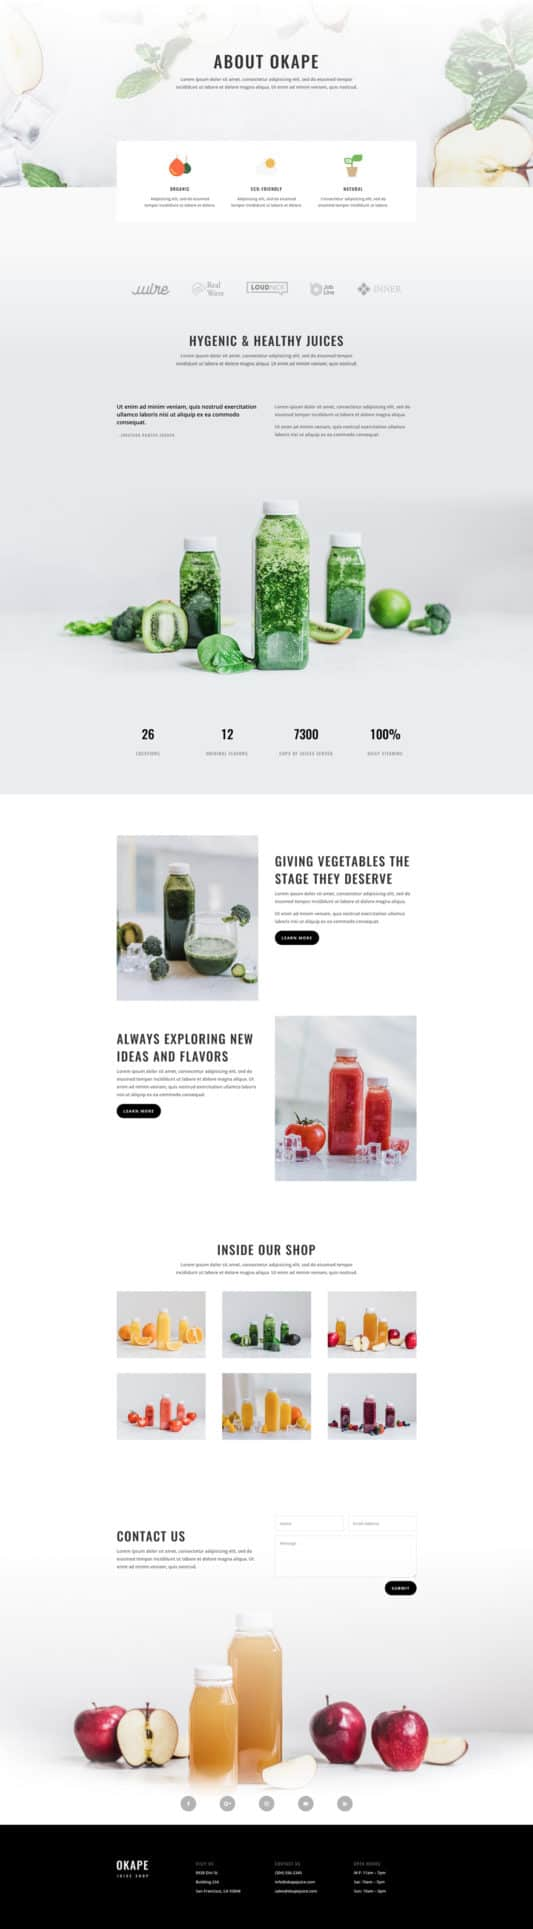 Juice Shop Web Design 1